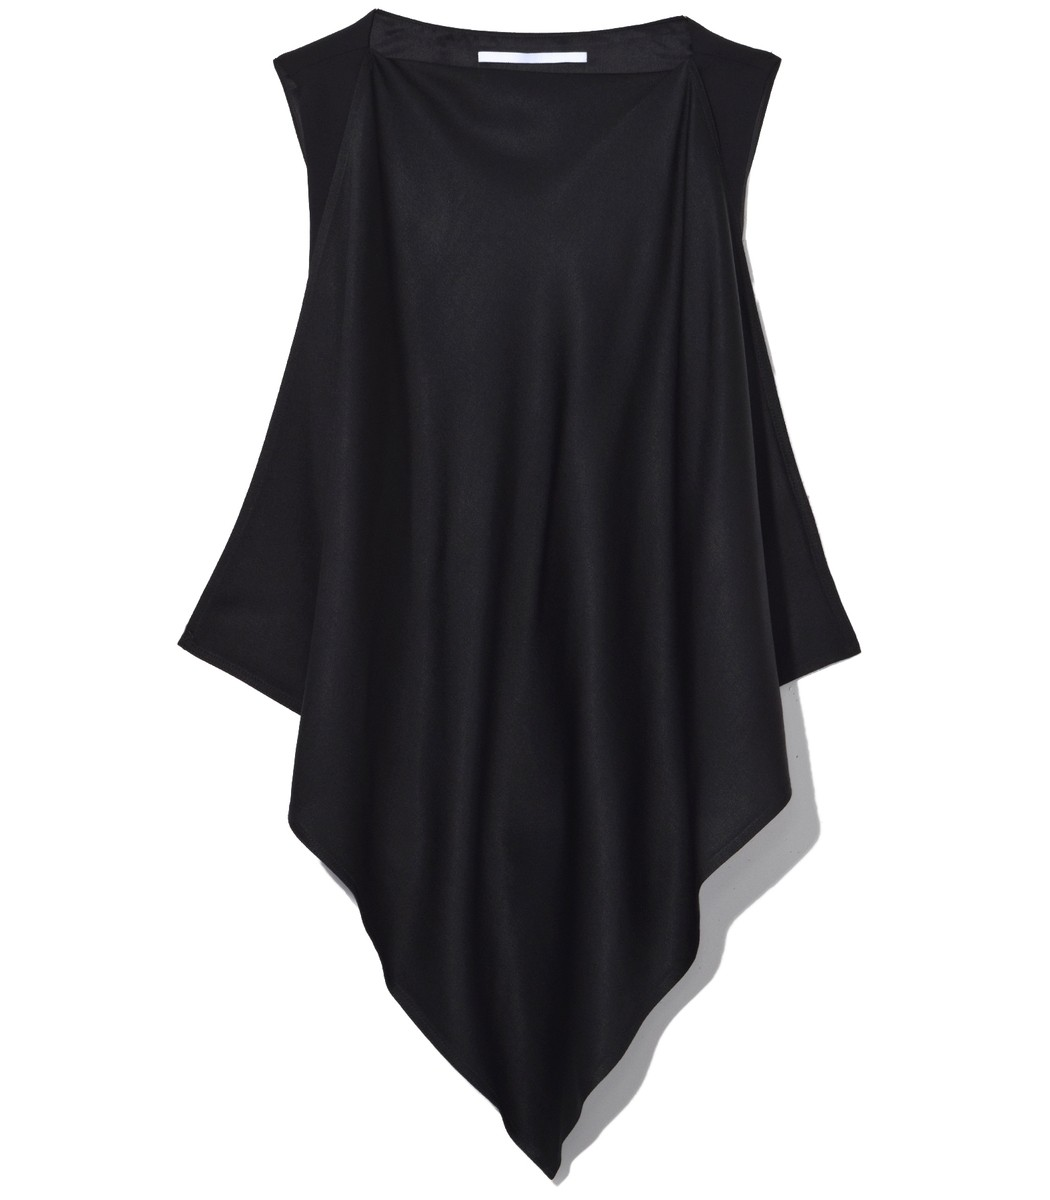 ROSETTA GETTY Black Scarf Neck Top